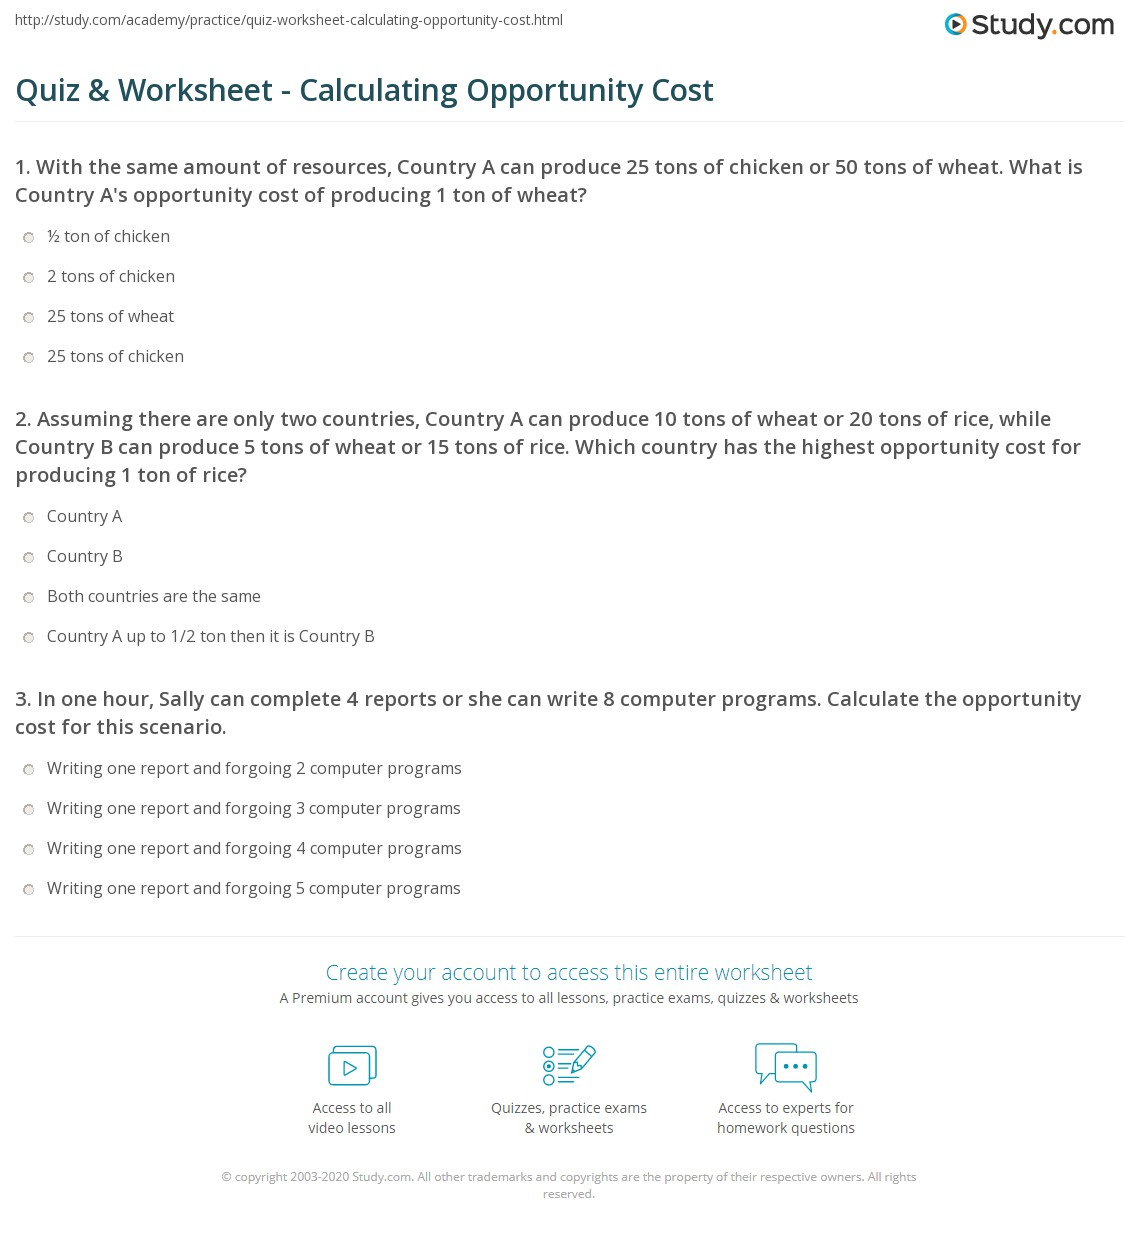 Quiz Worksheet Calculating Opportunity Cost Study